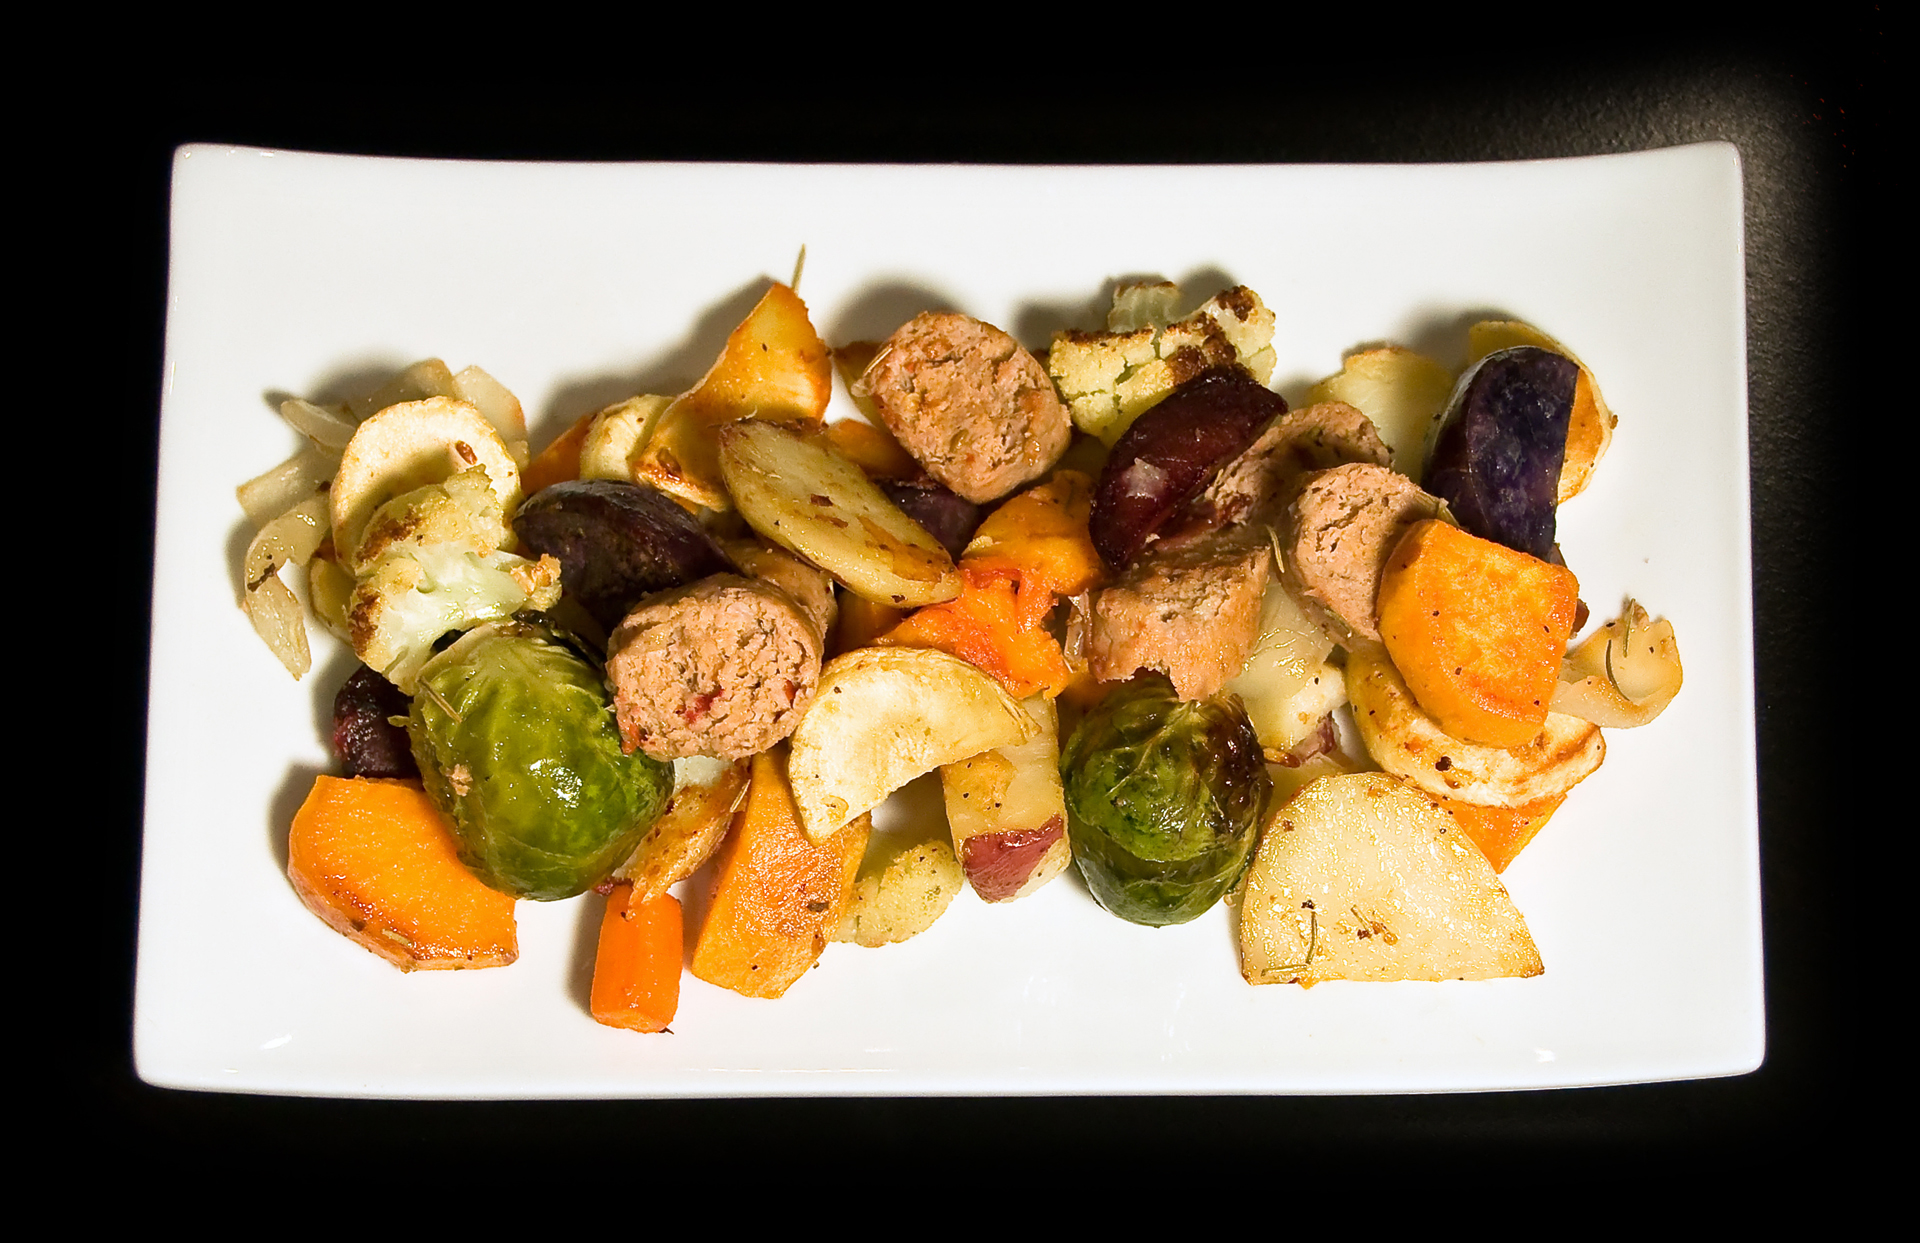 Roasted Root Vegetables with Turkey Sausage | The Little GSP